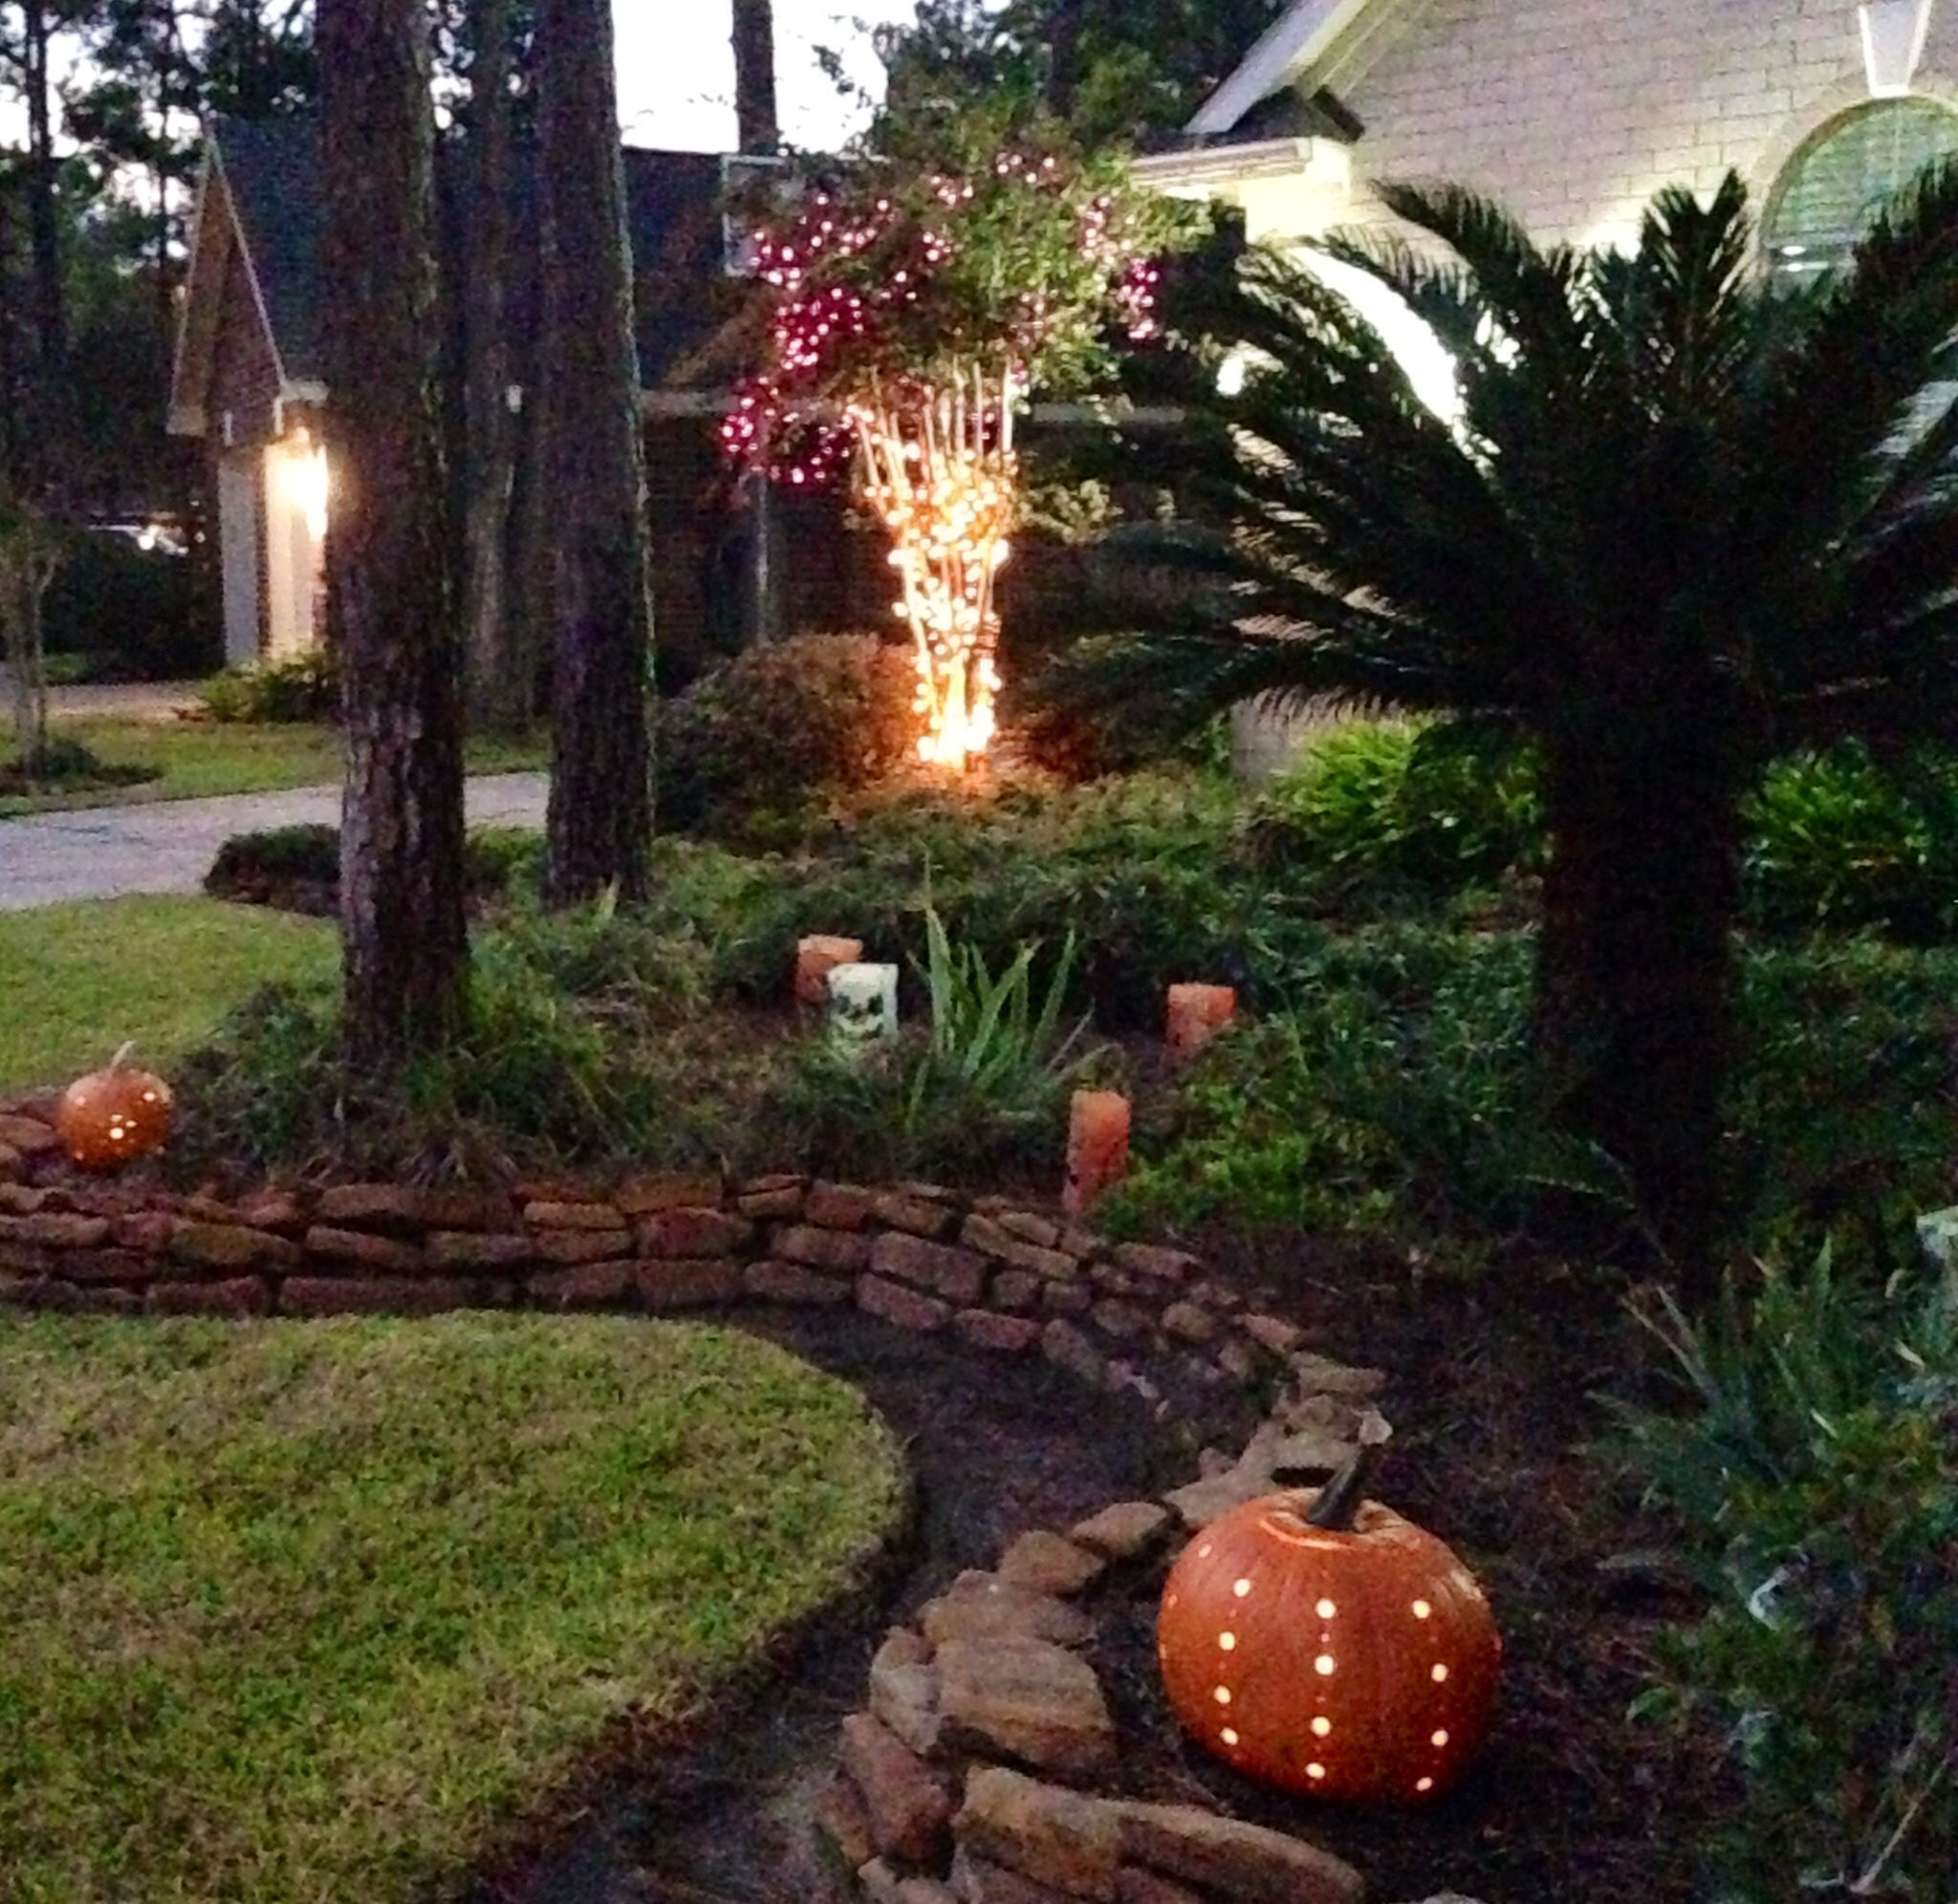 Outdoor Halloween Decorations DIY  Crafts that I love Pinterest - diy outdoor halloween decorations